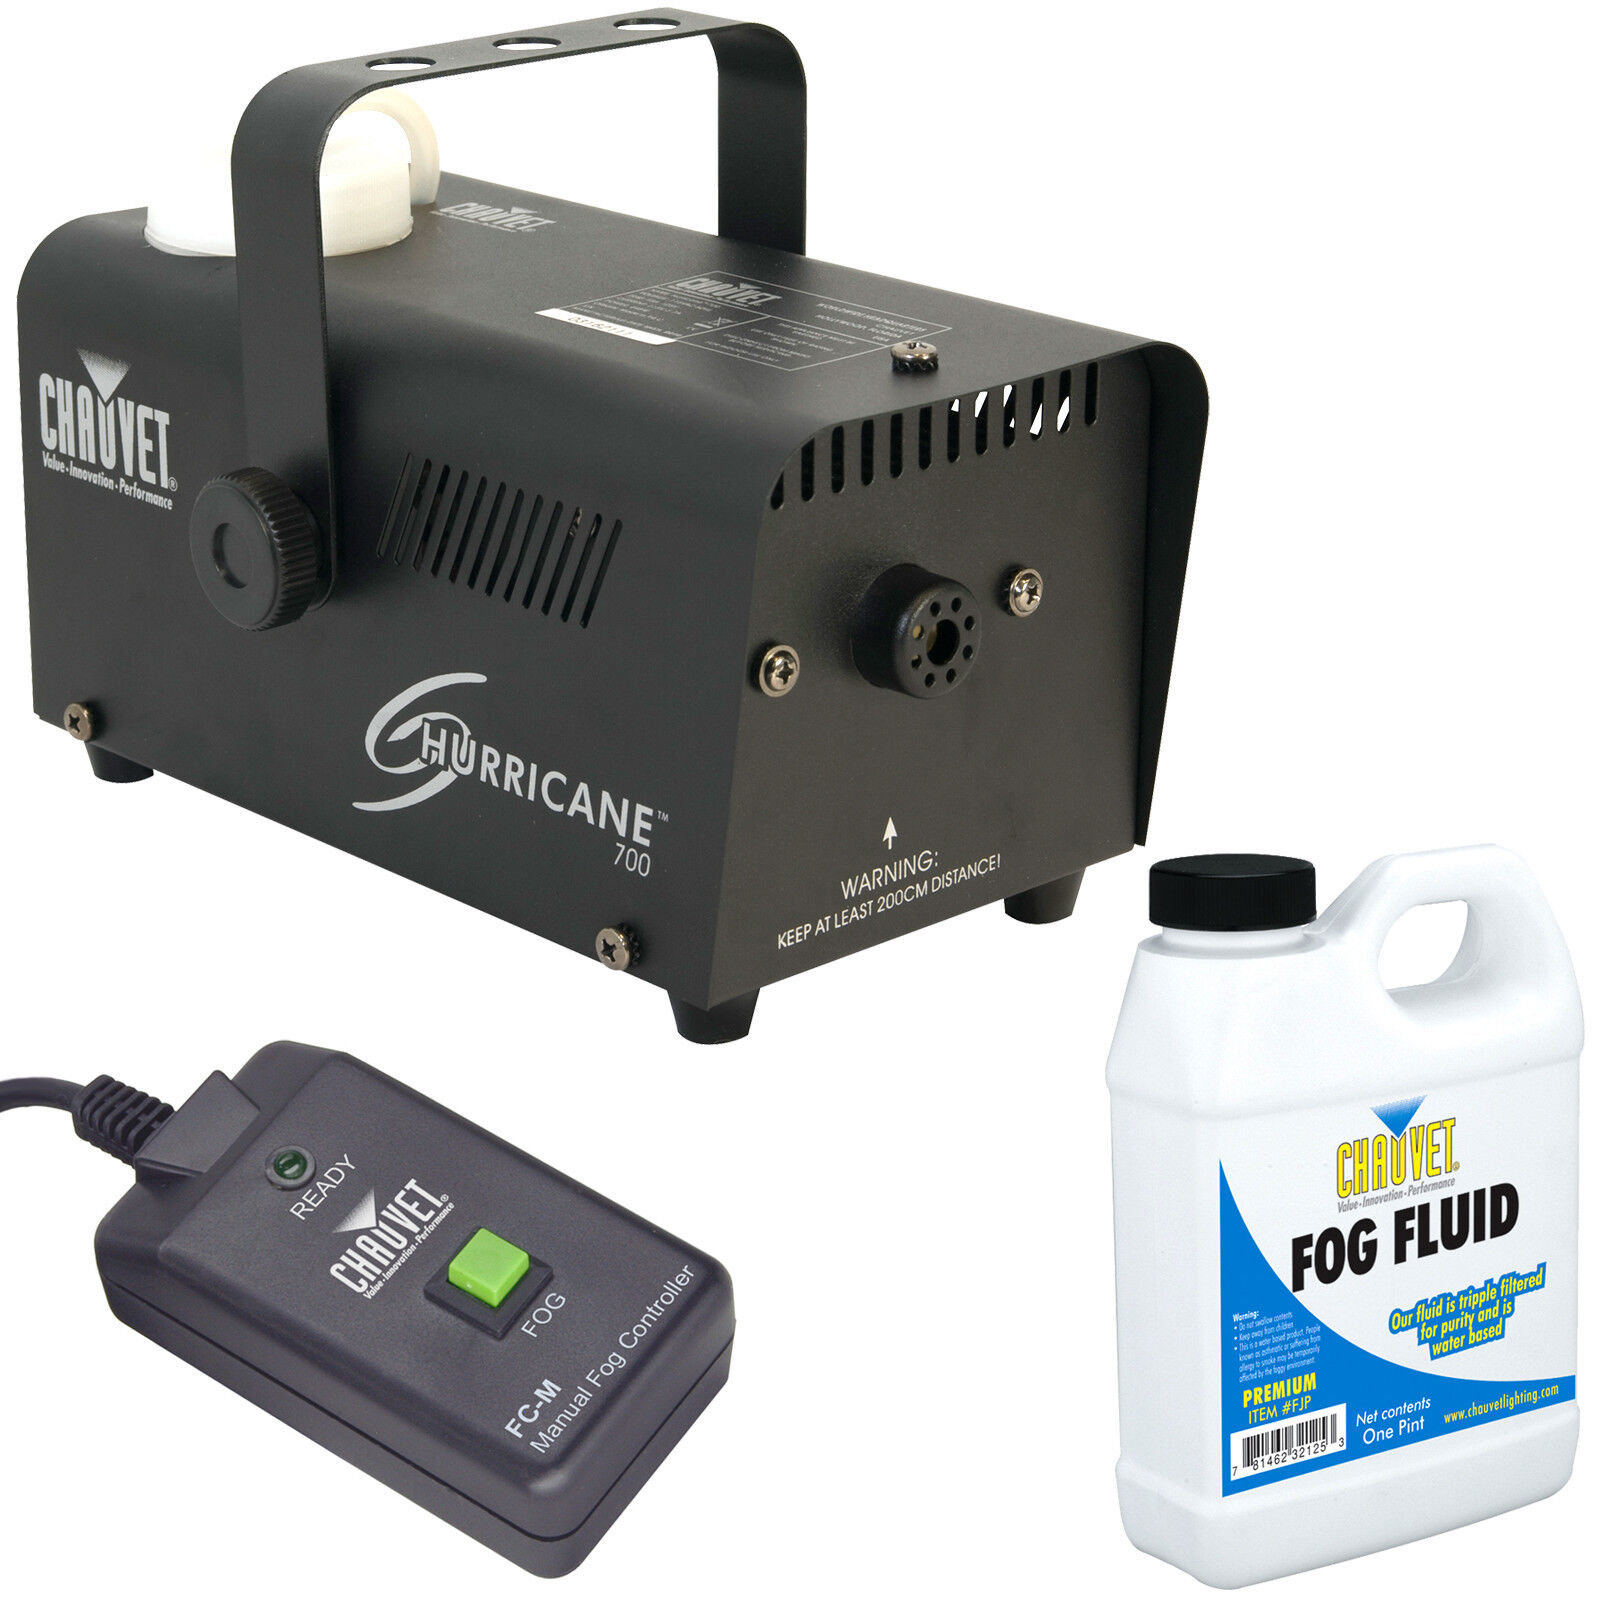 Chauvet H-700 Hurricane 700 Halloween Fog/Smoke Machine With Fluid Remote - $29.99